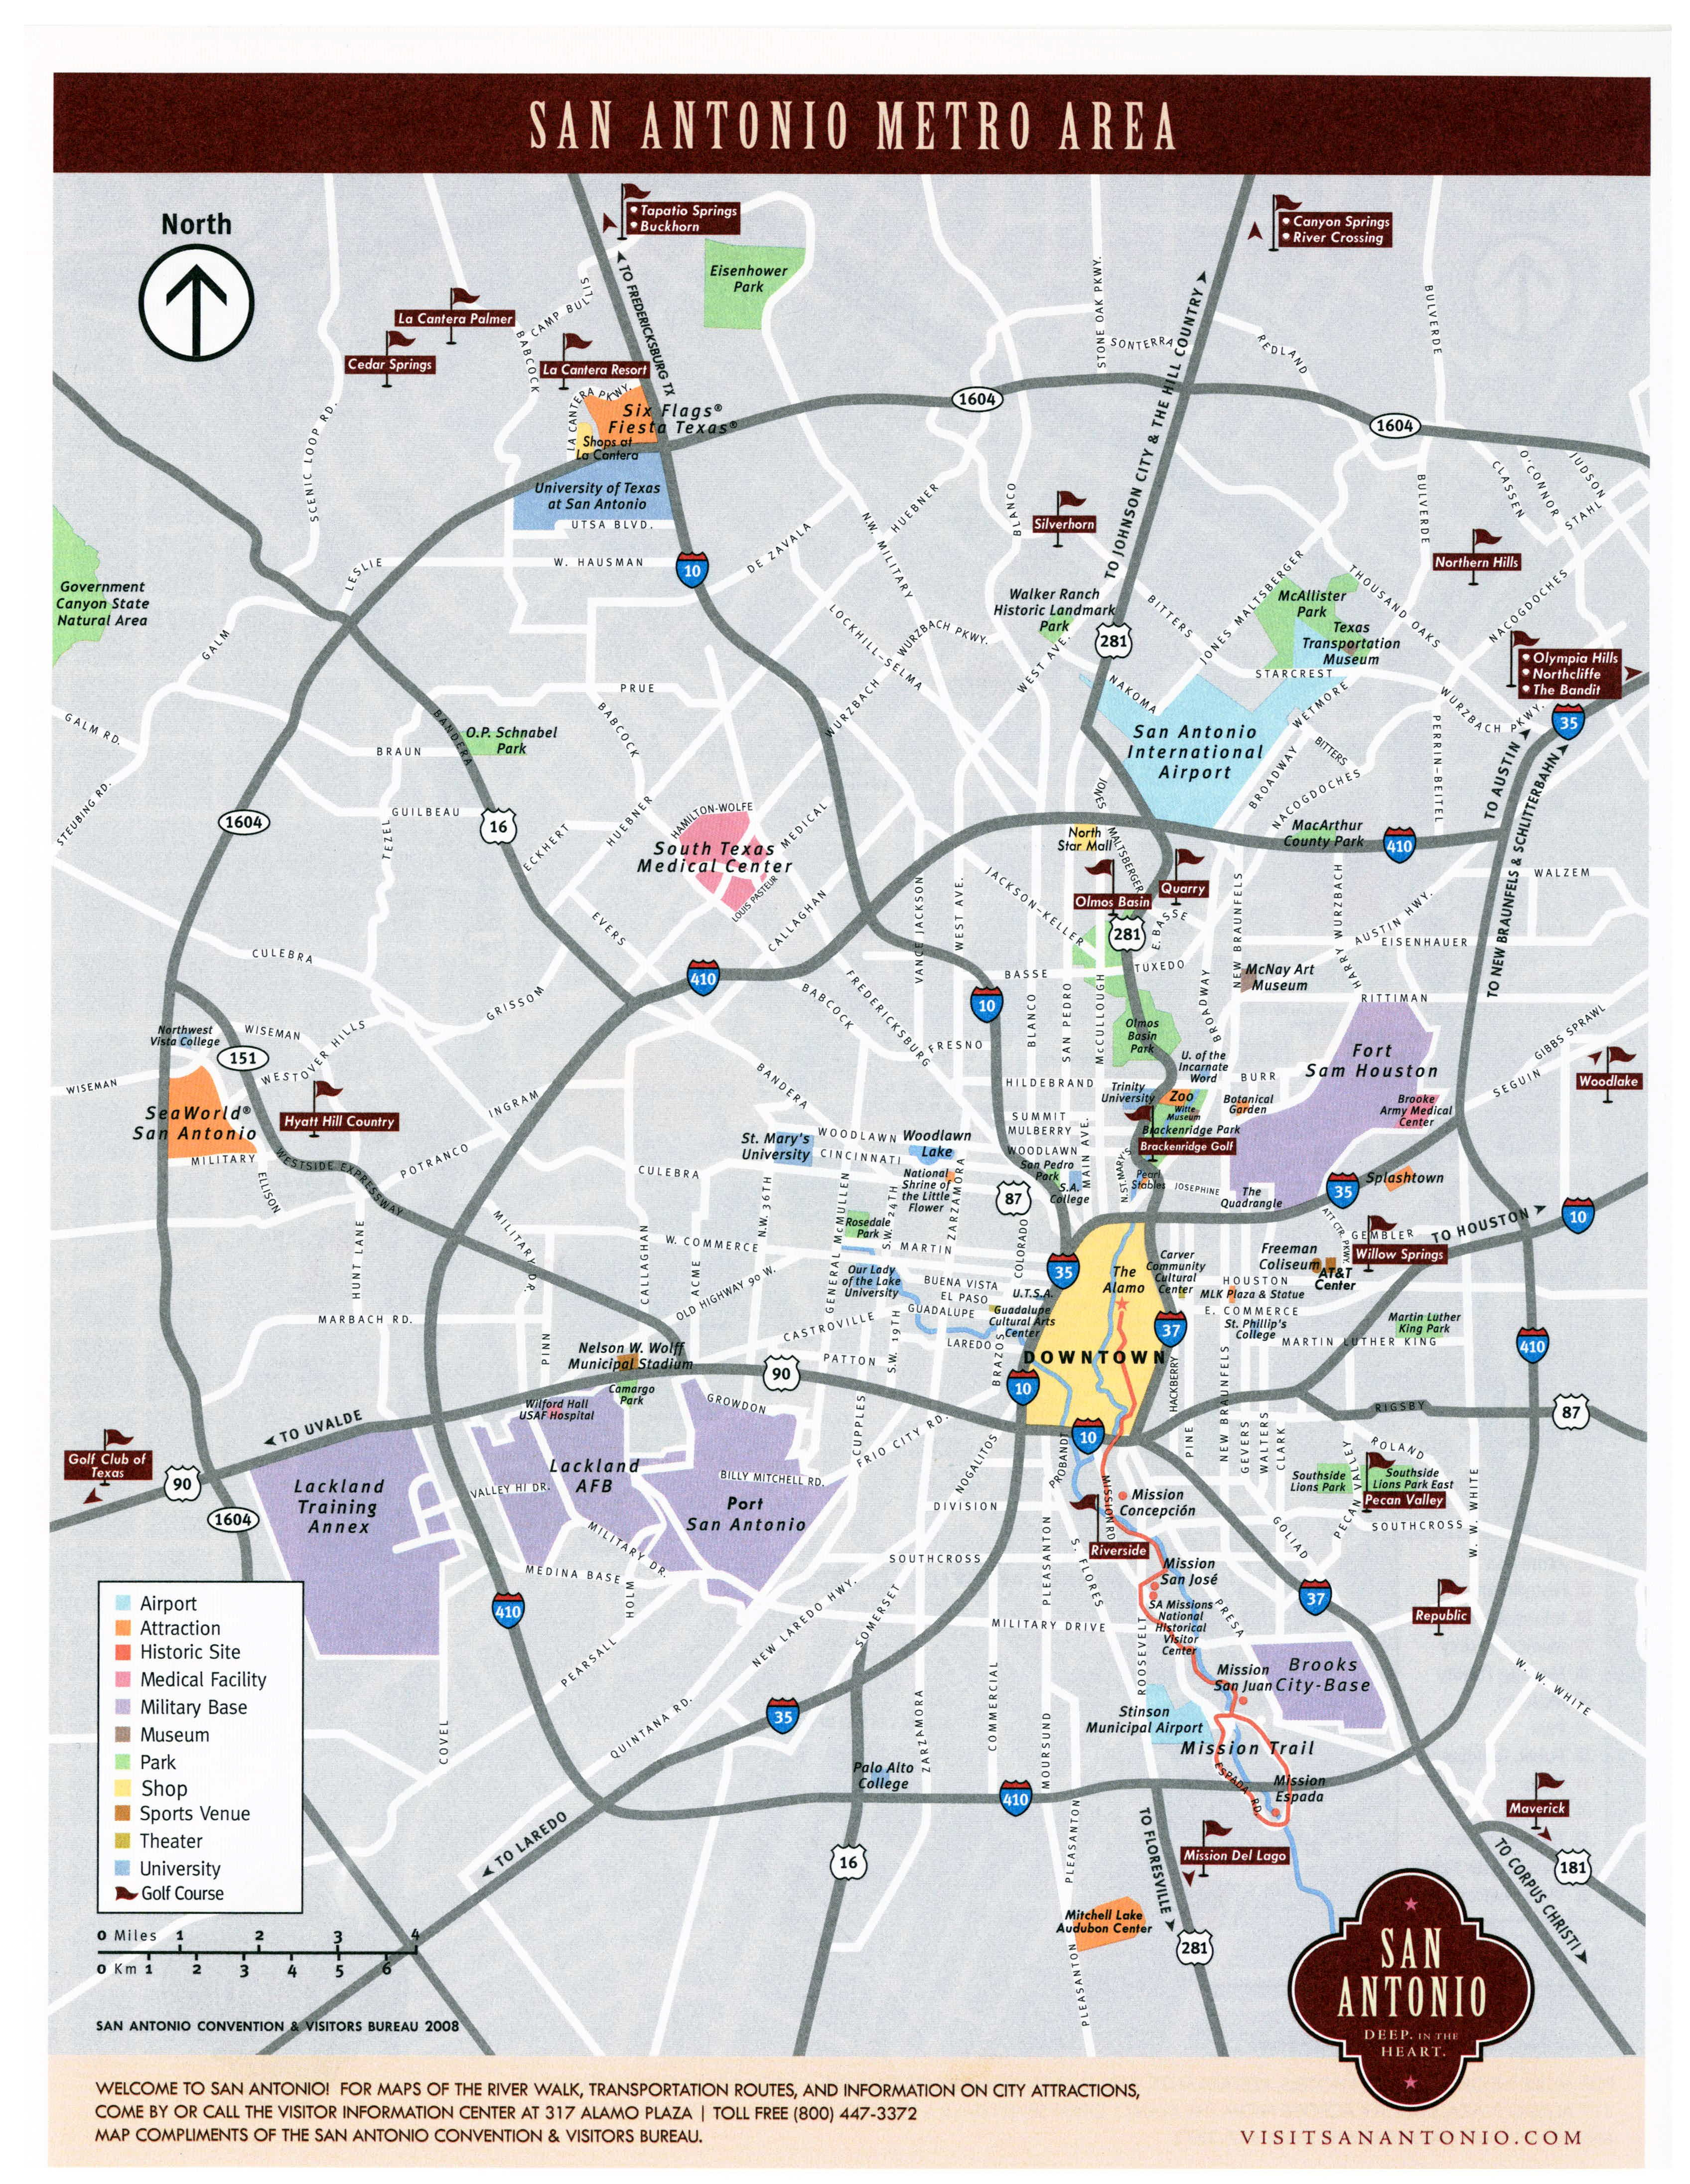 Large San Antonio Maps For Free Download And Print | High-Resolution - Map Of Hotels In San Antonio Texas